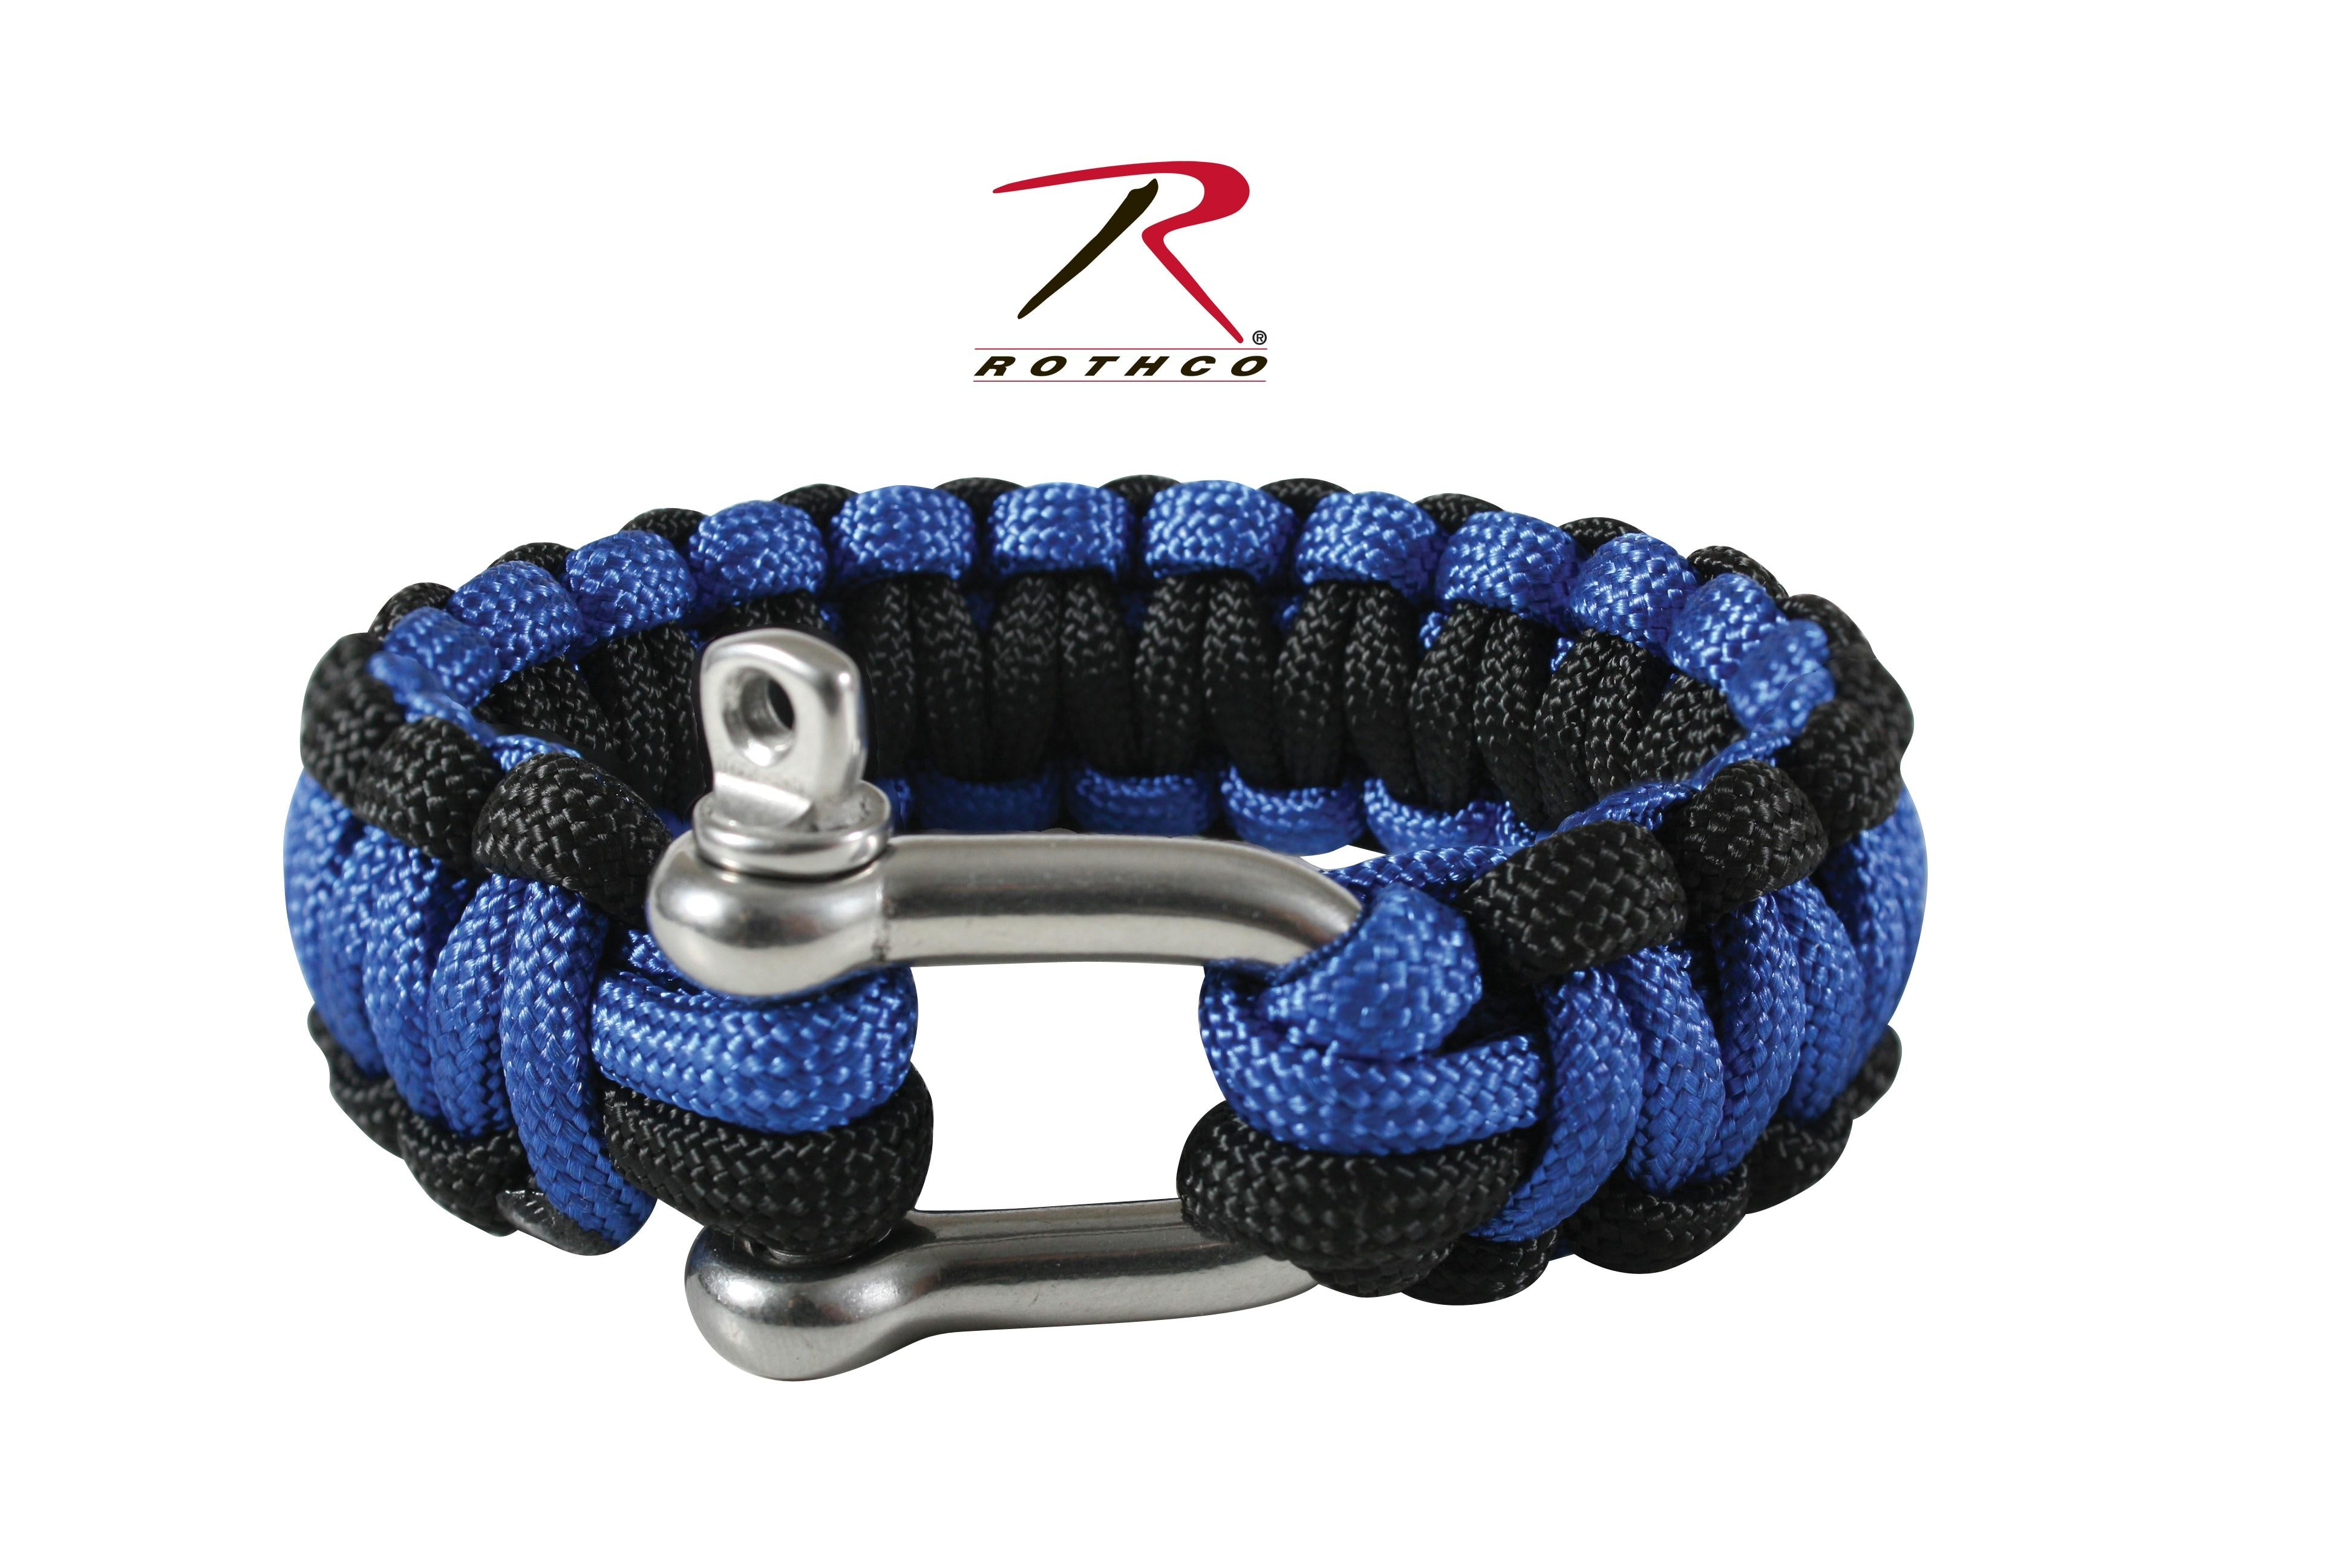 Rothco Paracord Bracelet With D-Shackle - Blue / Black / 10 Inches